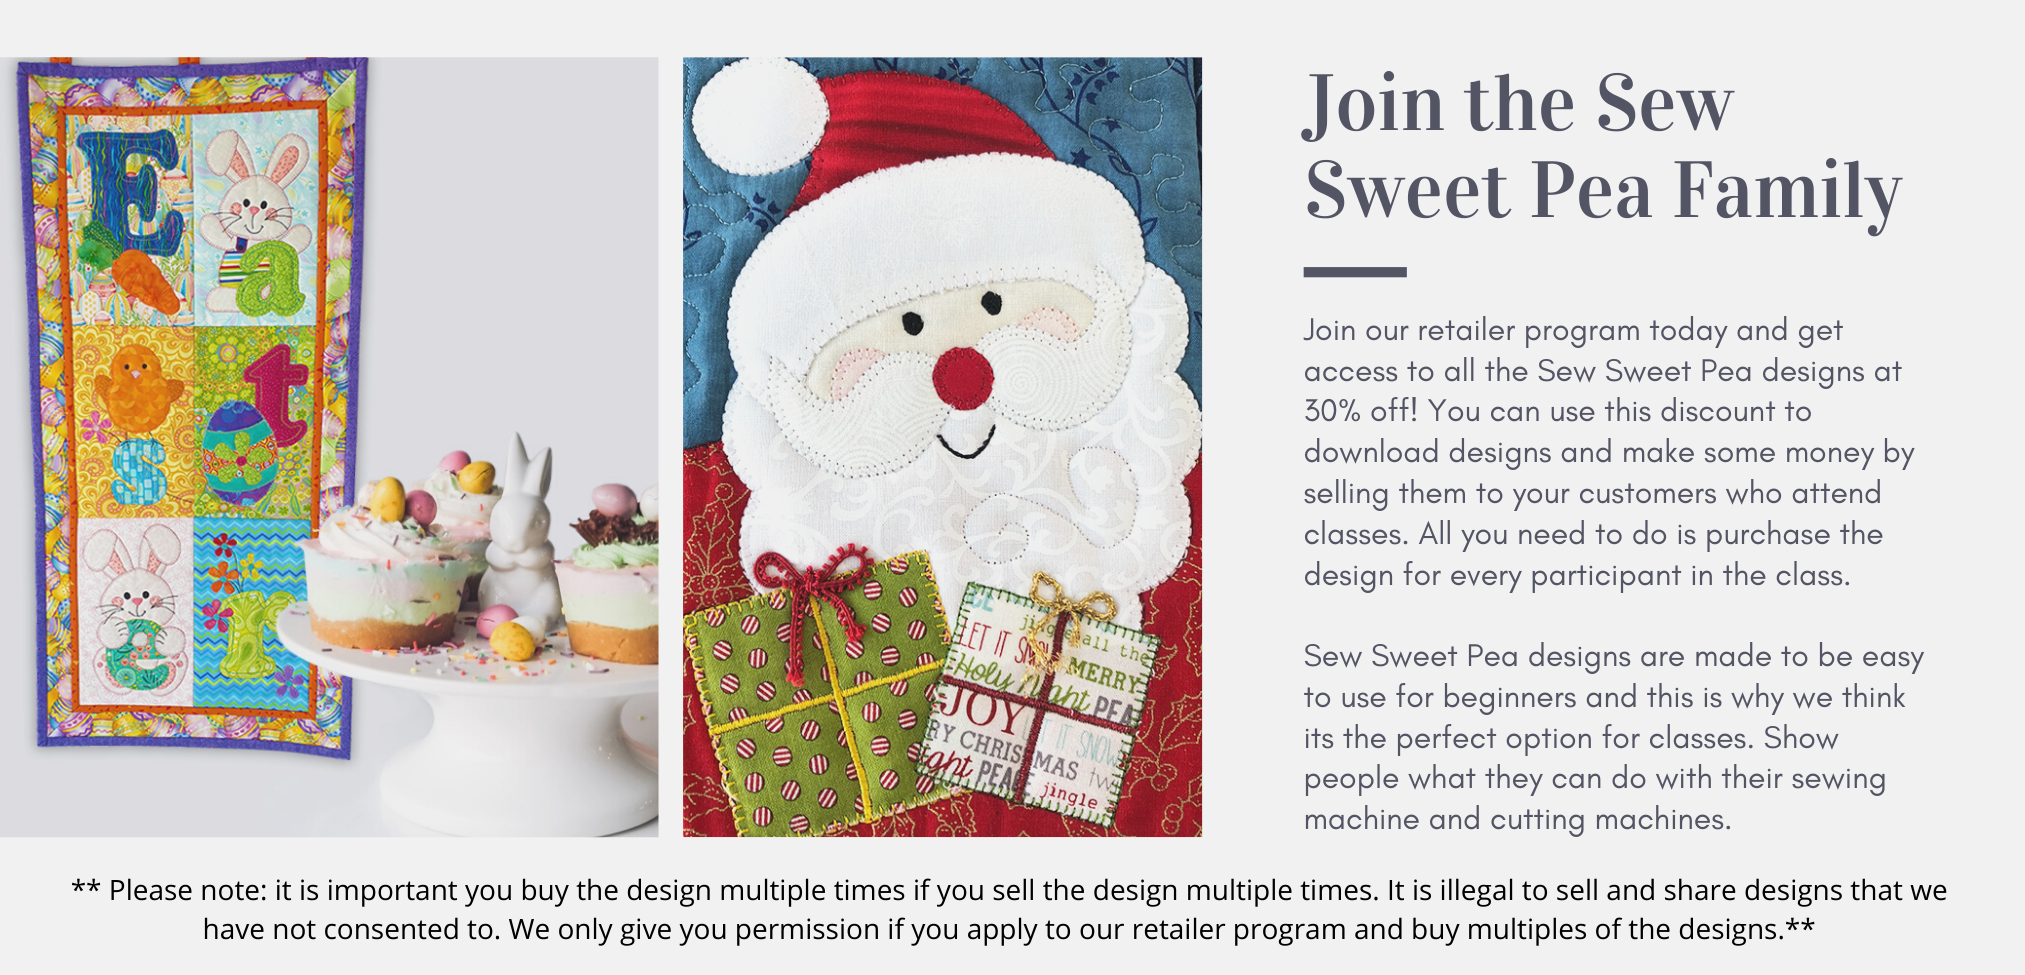 retailer program for sewing shops for applique patterns at sew sweet pea